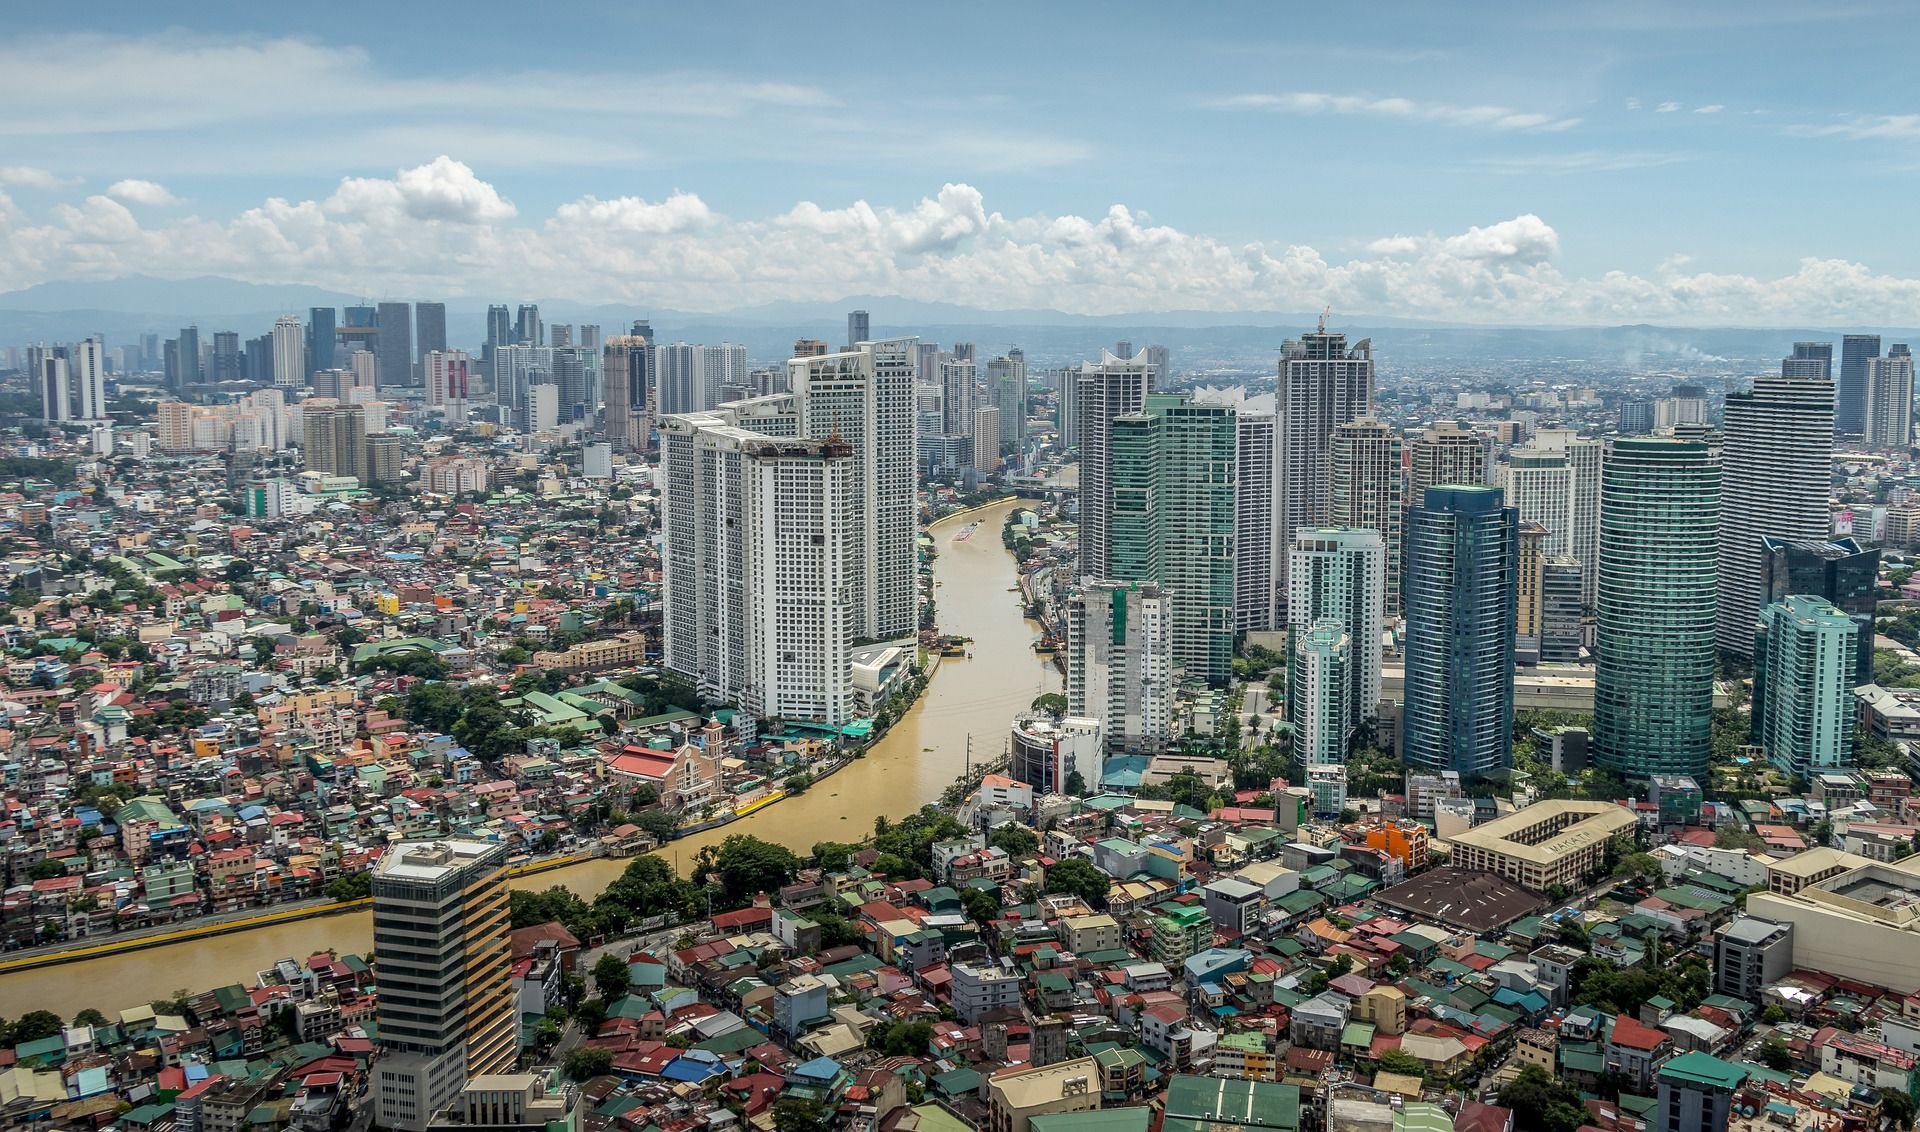 Skyline view of Manila in the Philippines